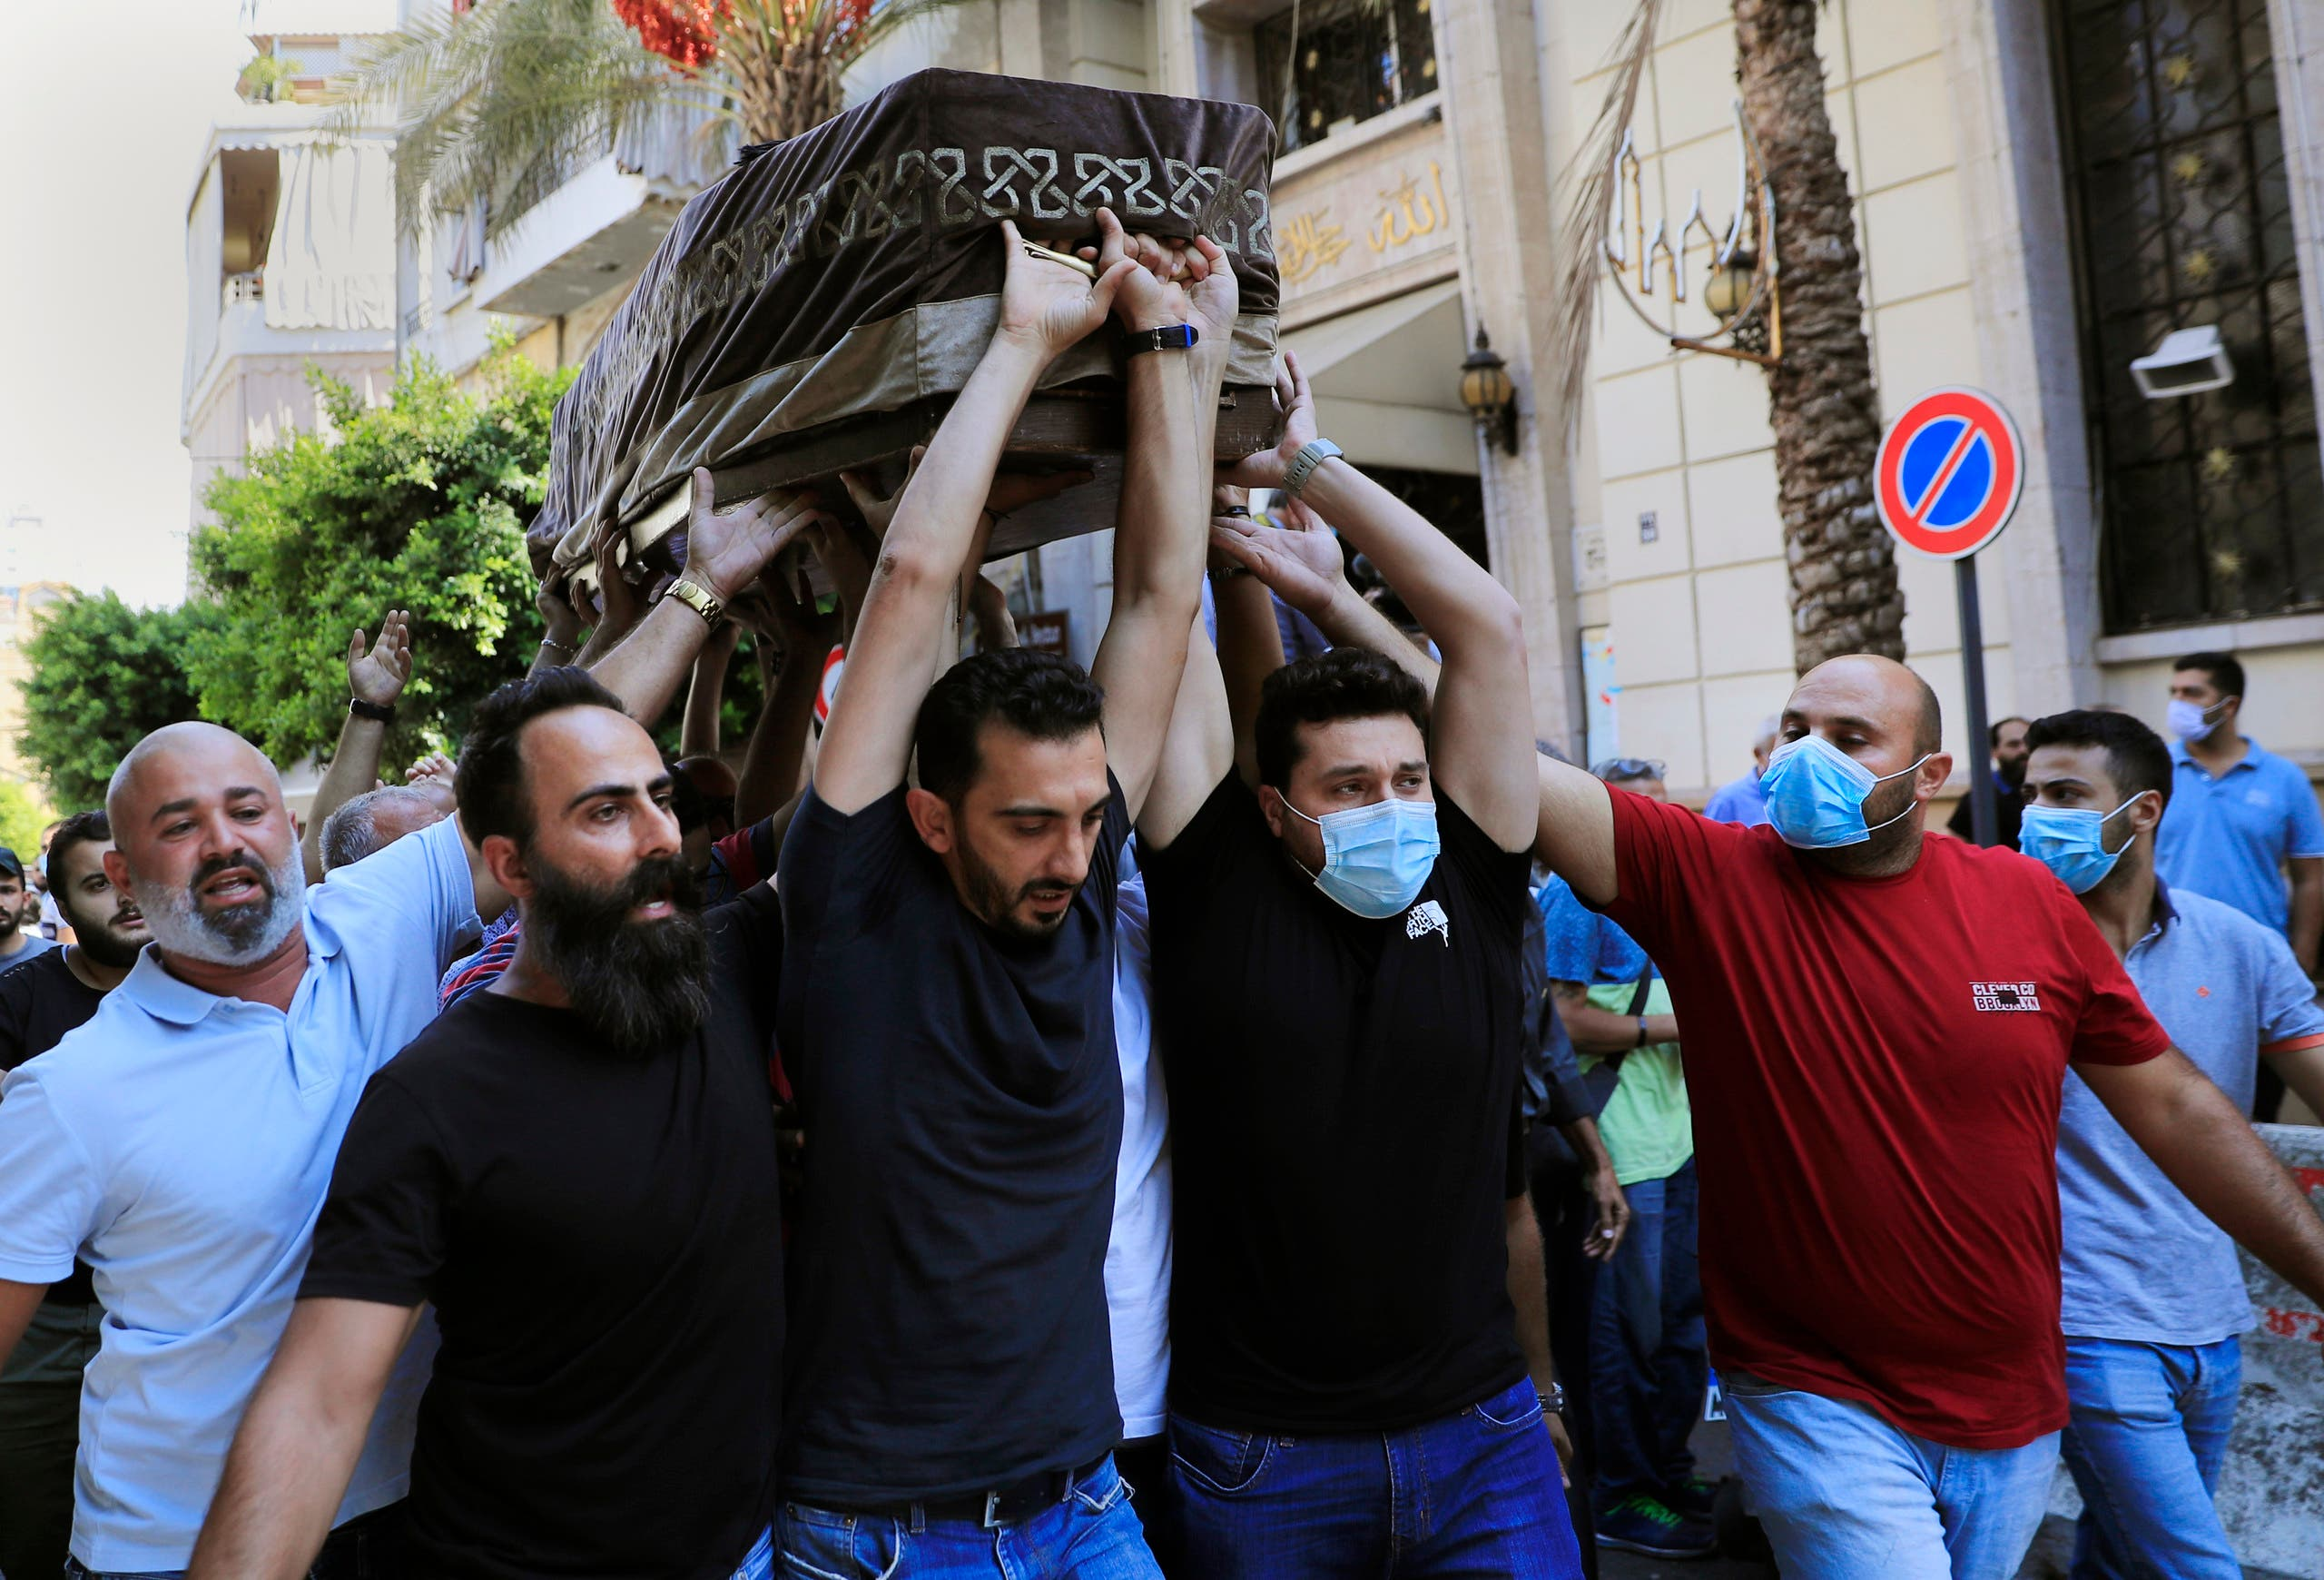 Mourners carry the coffin of Ibrahim Harb, 35, who was critically injured in the massive explosion at Beirut's port last year and who died on Monday nearly 14 months after the blast, in Beirut, Lebanon, Tuesday, Sept. 28, 2021.  (AP)